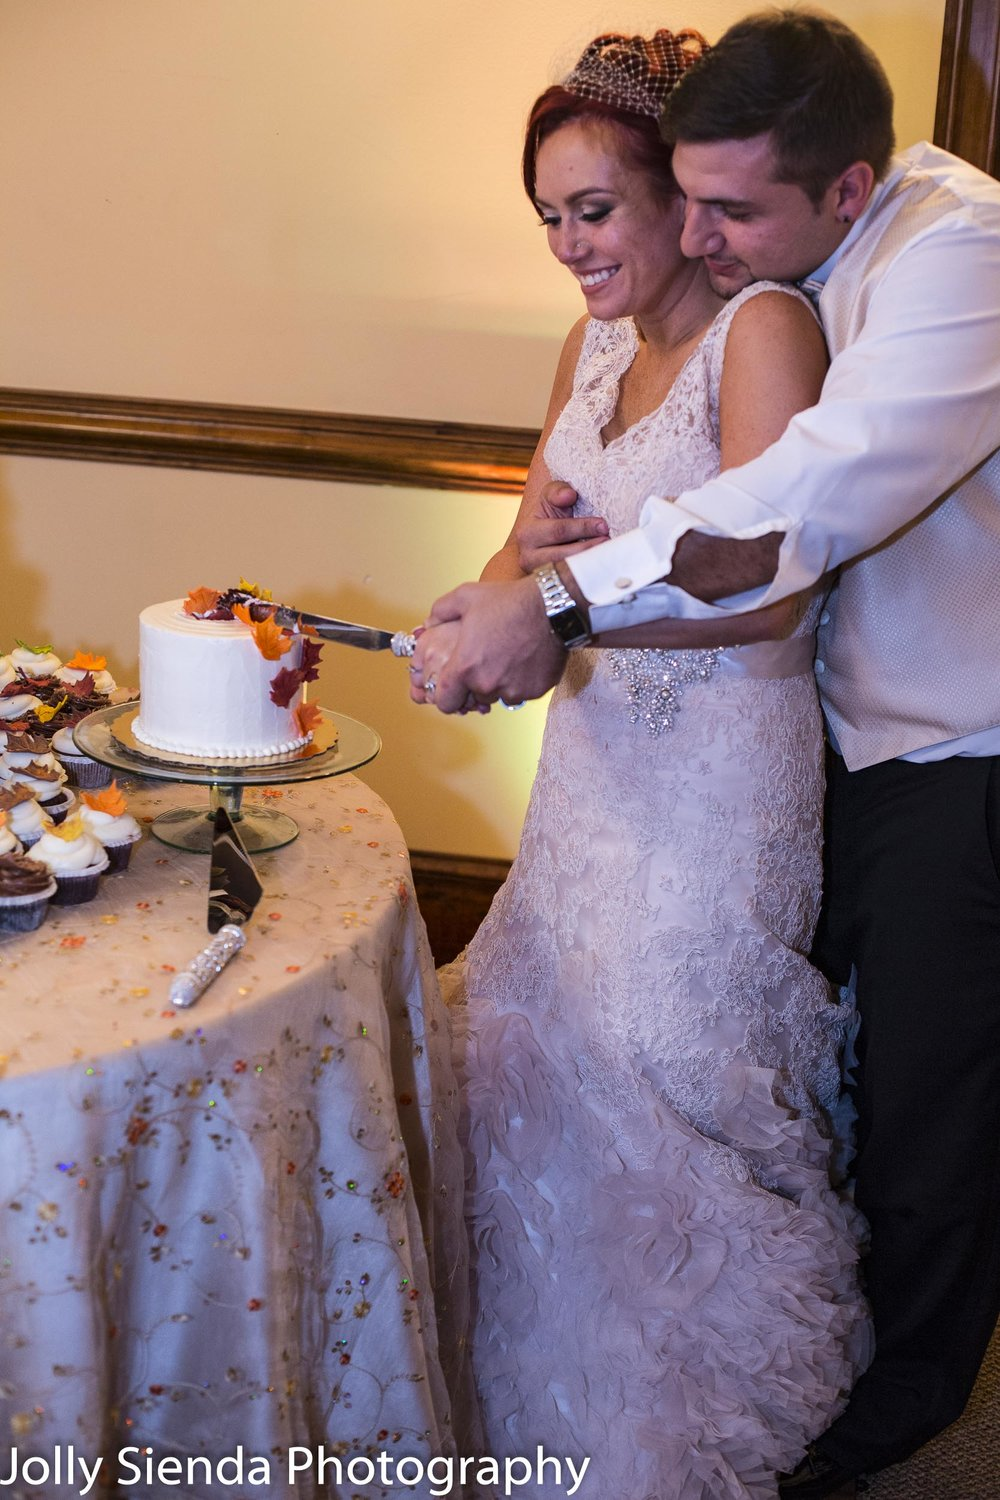 Cutting the autumn wedding cake